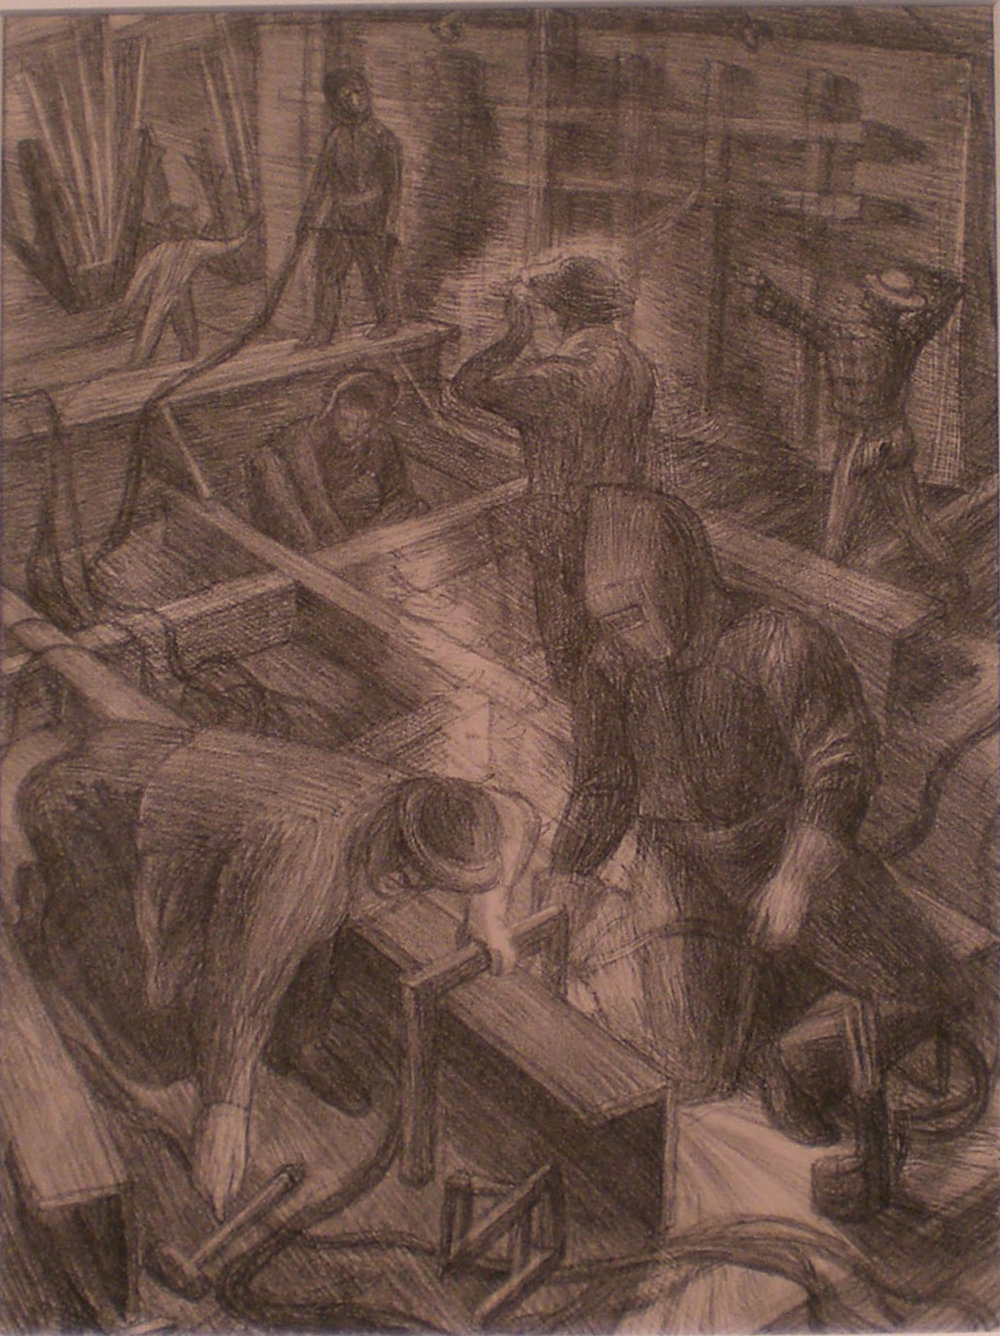 Shipyard Workers, print, 17 x 15 Pathways Private Collection